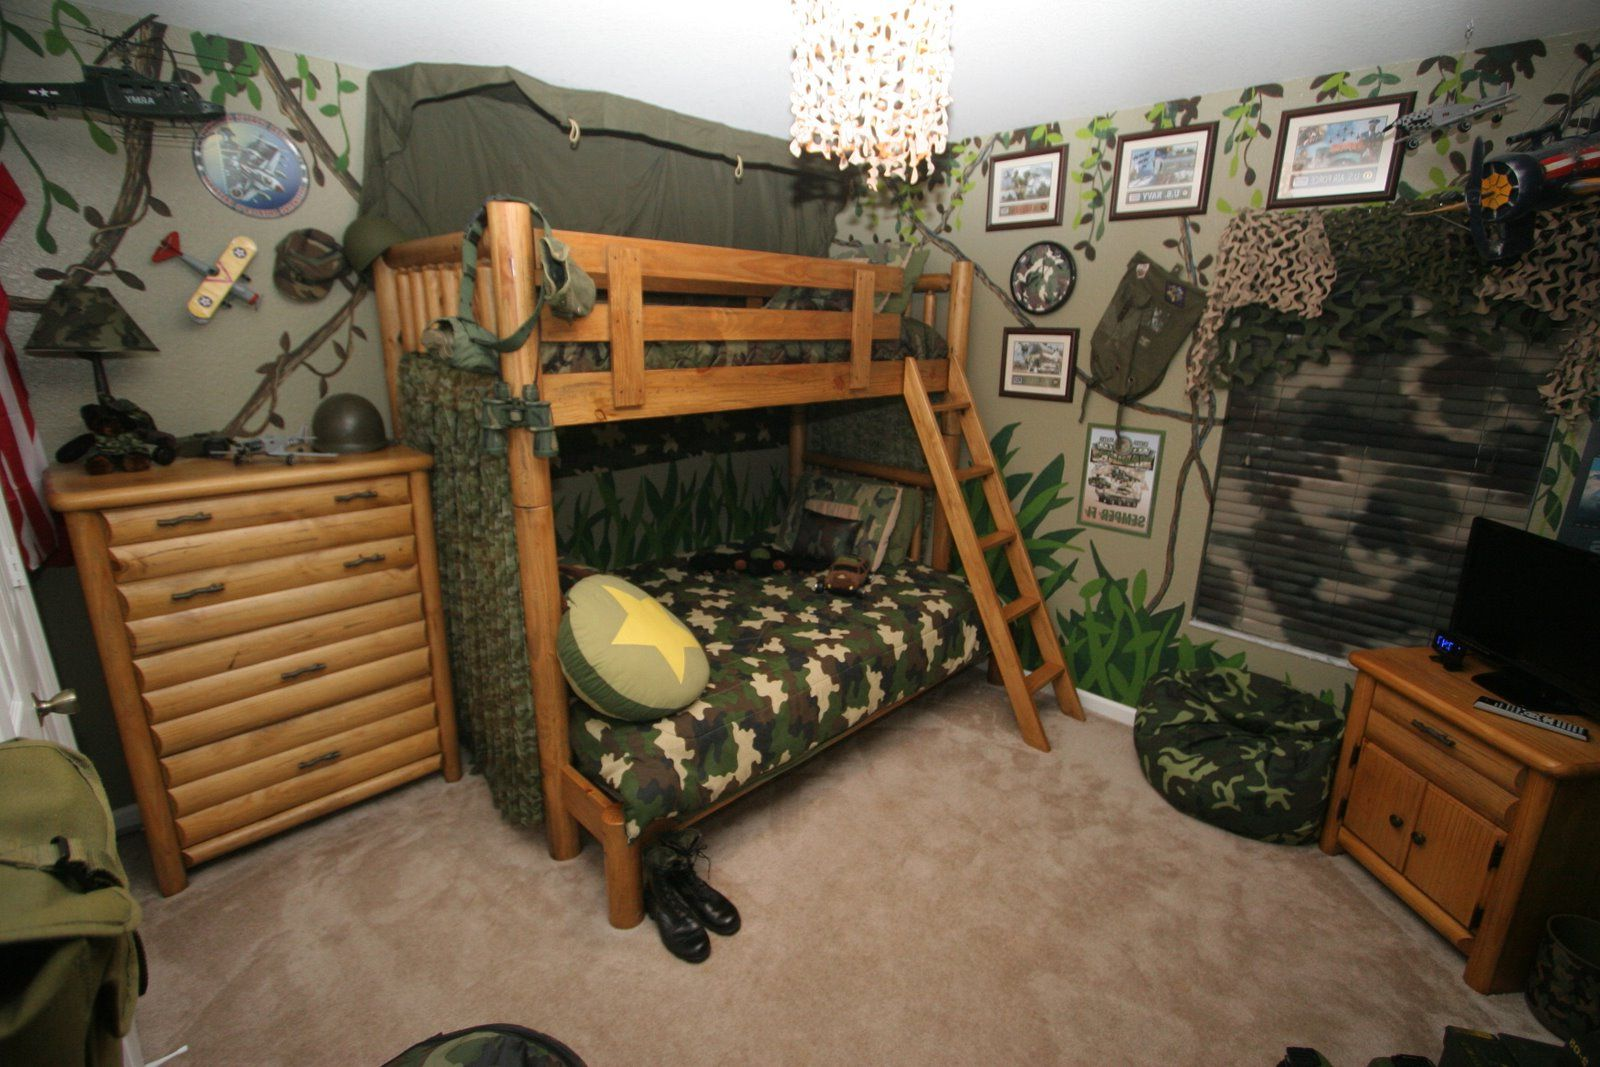 Camo teens bedroom for boys usnow.org